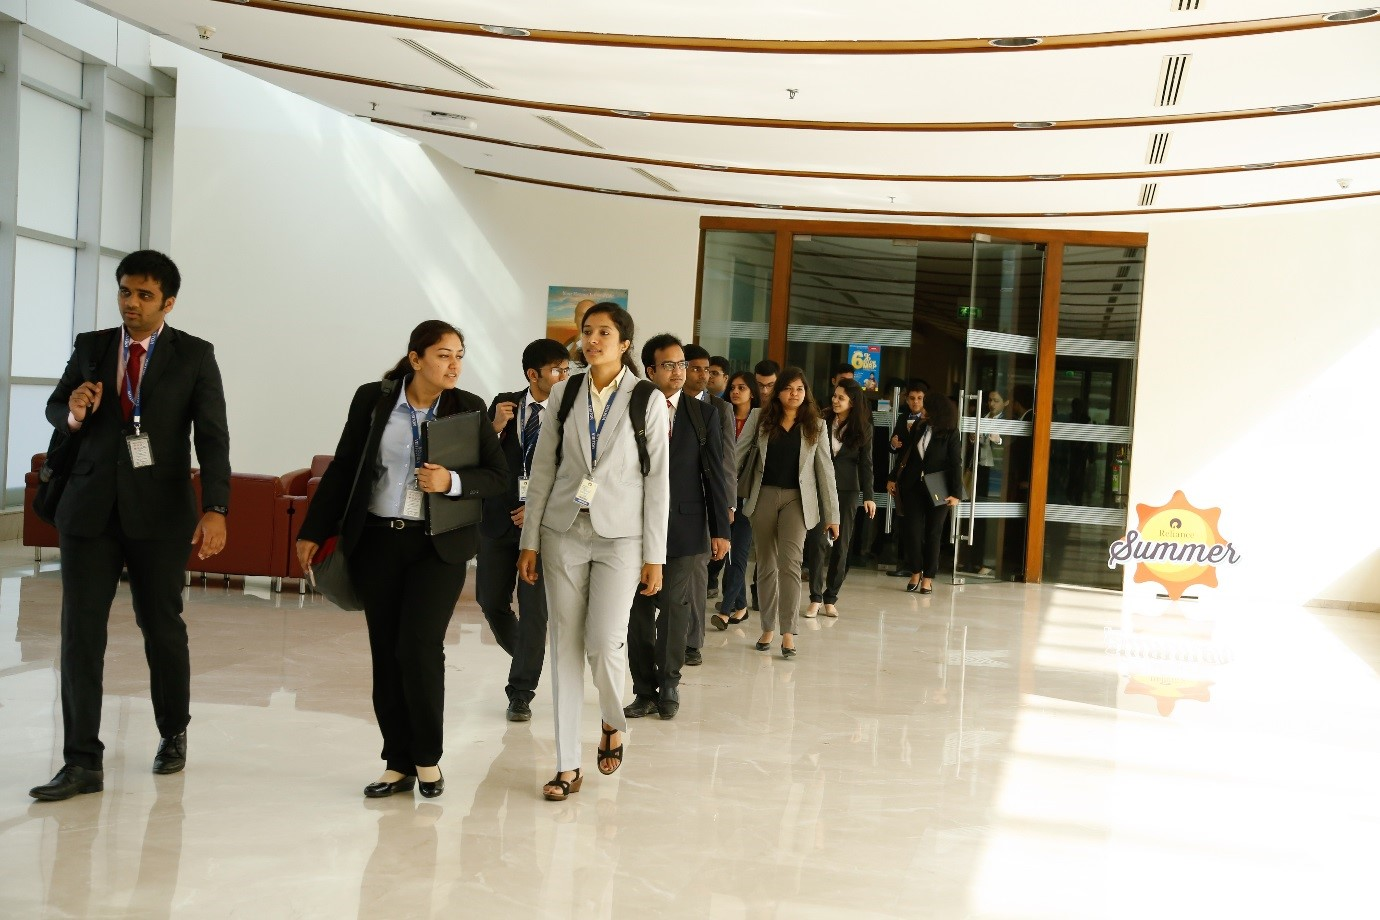 Reliance Careers - Students and Graduates